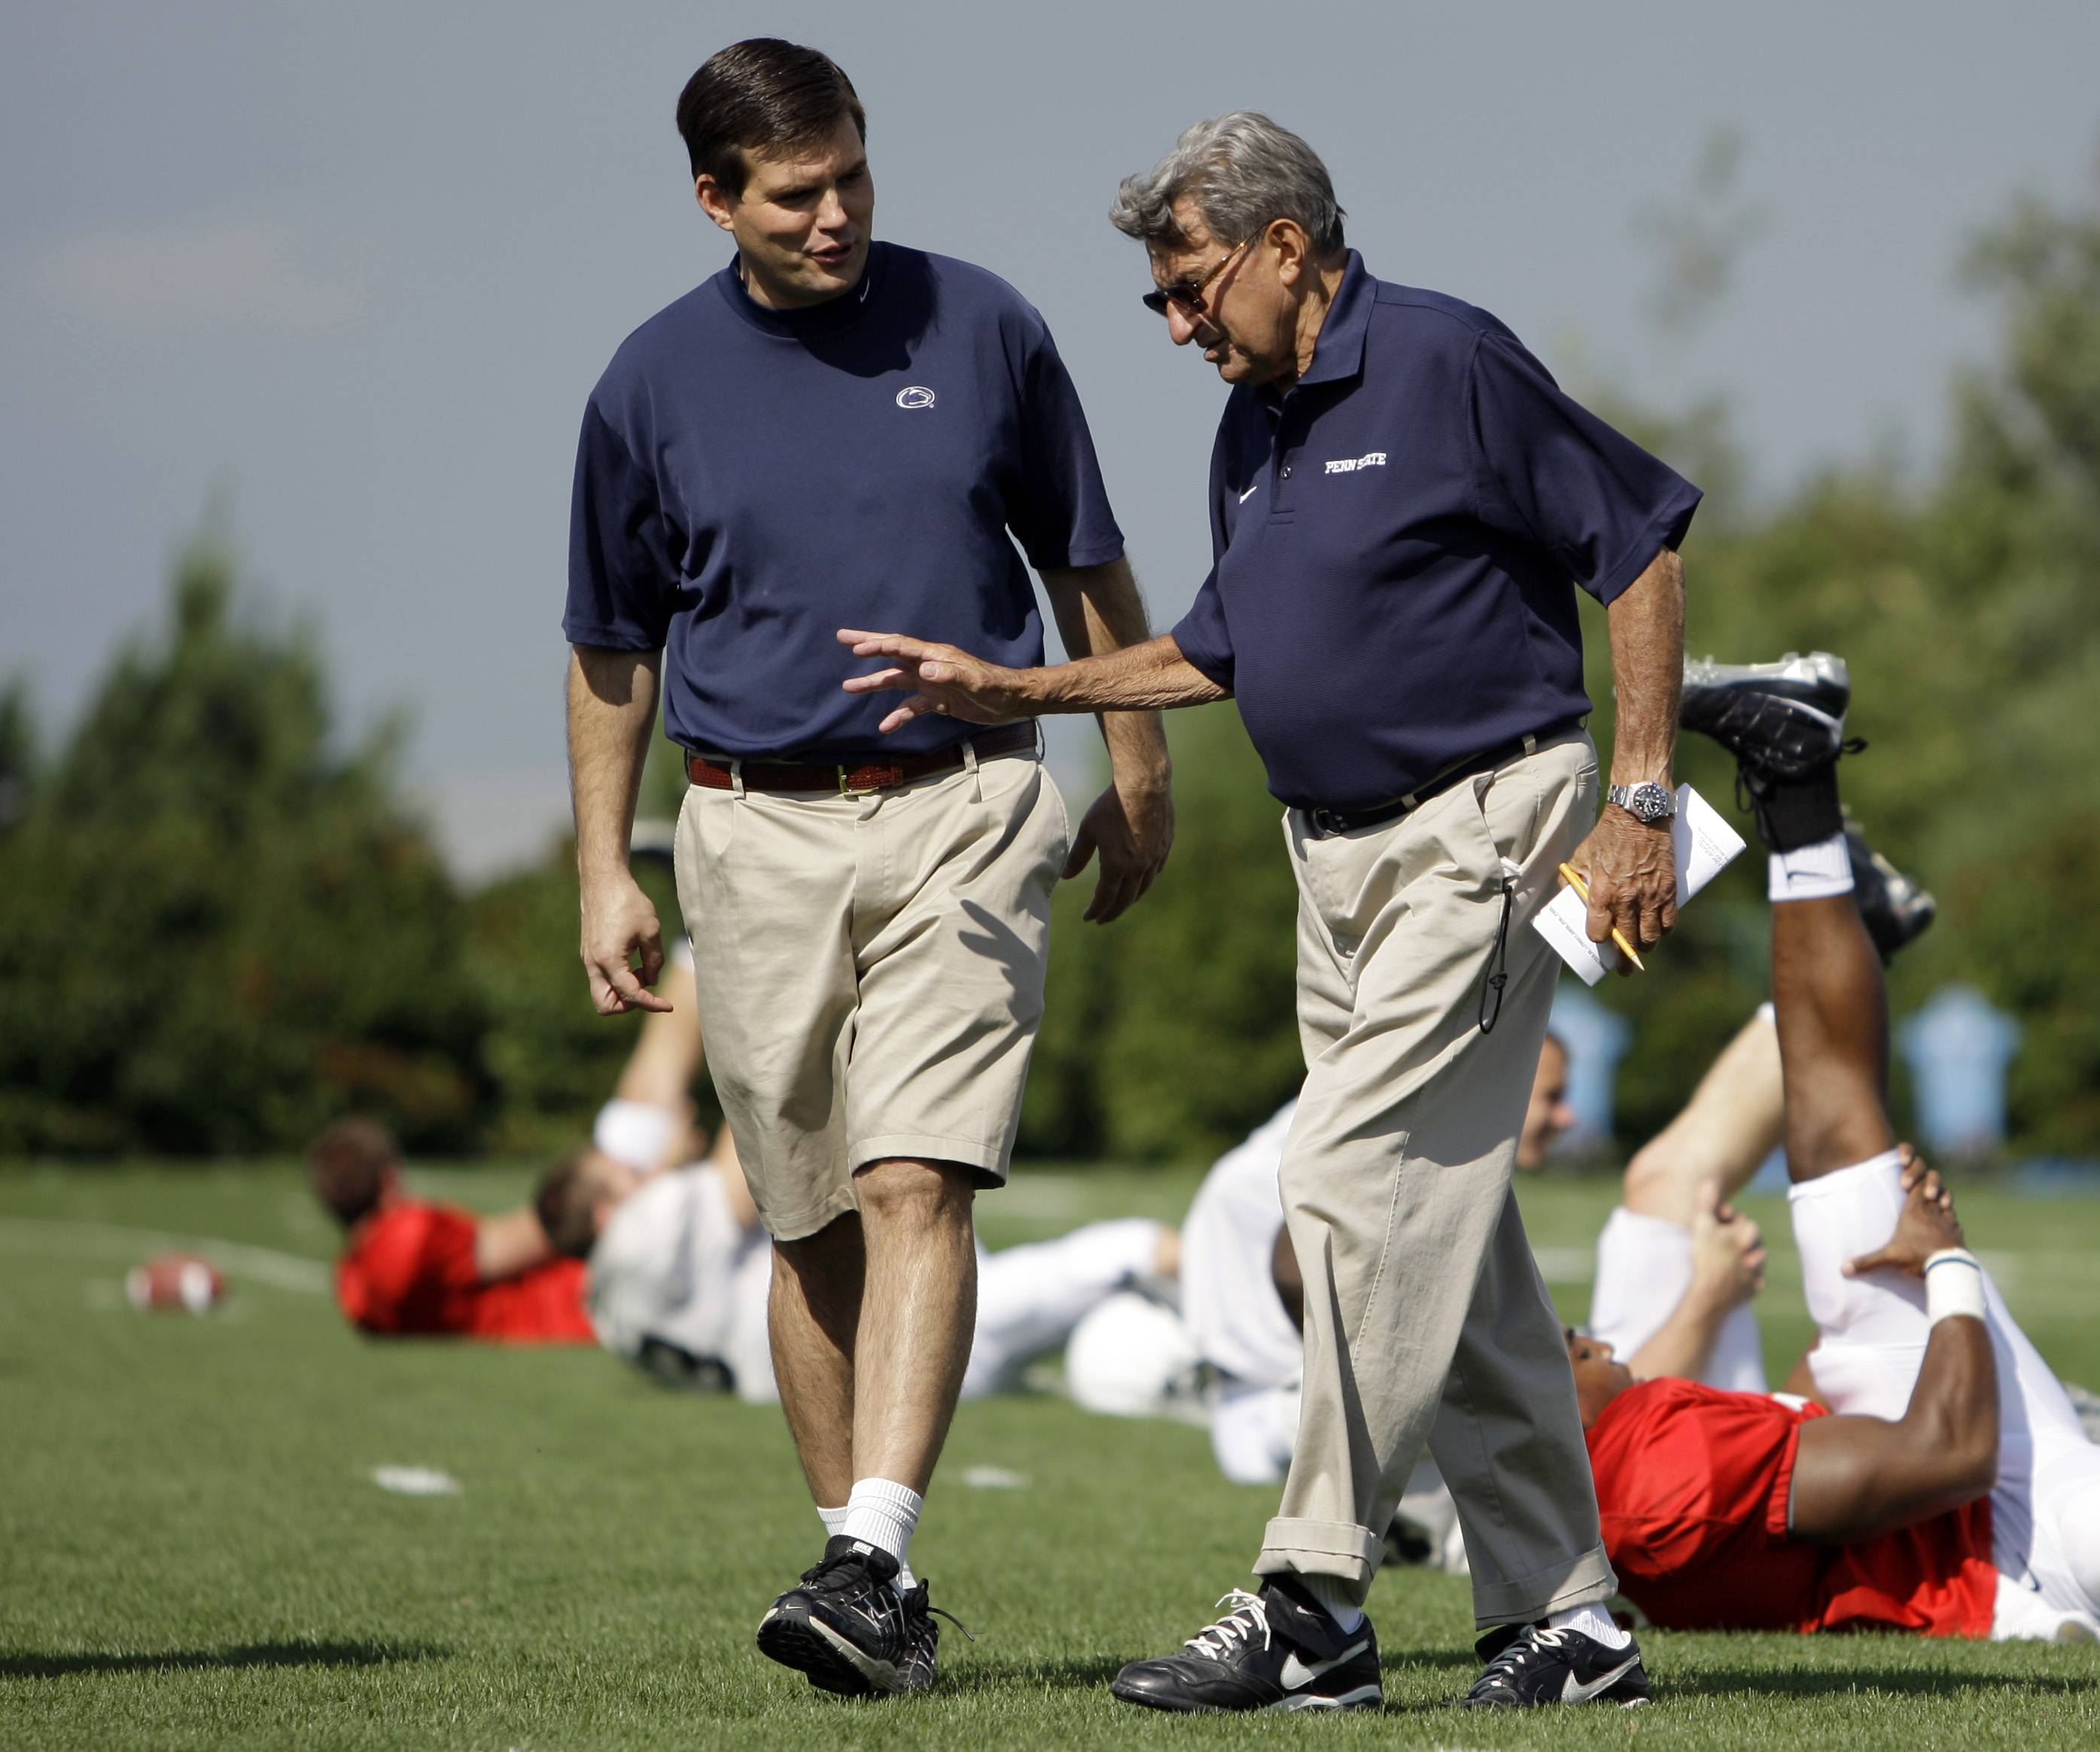 "Former Penn State football coach Joe Paterno, right, is shown here in 2008 walking with his son and quarterback coach Jay Paterno, who has written a new book titled ""Paterno Legacy: Enduring Lessons from the Life and Death of My Father."" Joe Paterno told his son the day after his firing that he hadn't informed the coaching staff about allegations Jerry Sandusky may be a child molester because he was unsure whether they were true, Jay Paterno writes in his new book."